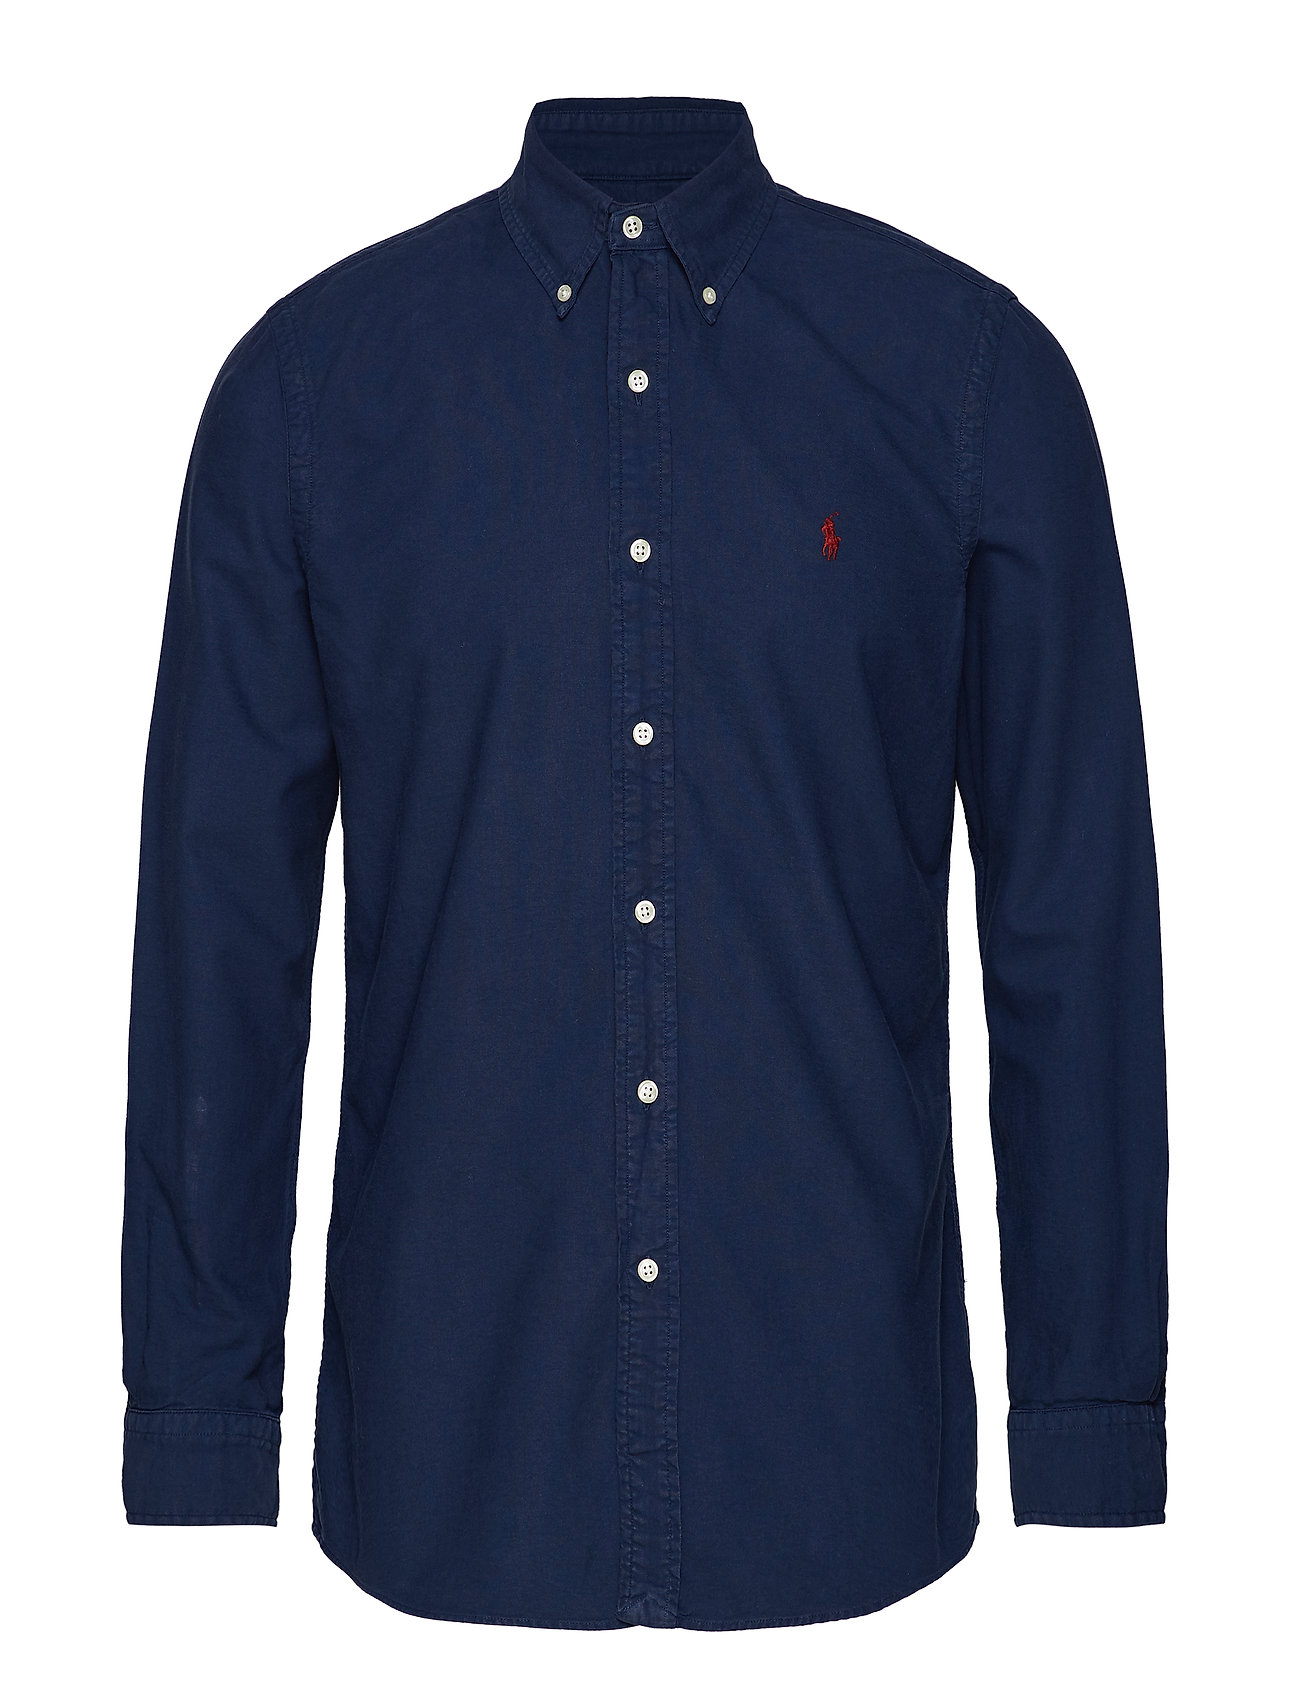 Polo Ralph Lauren Custom Fit Cotton Oxford Shirt - CRUISE NAVY